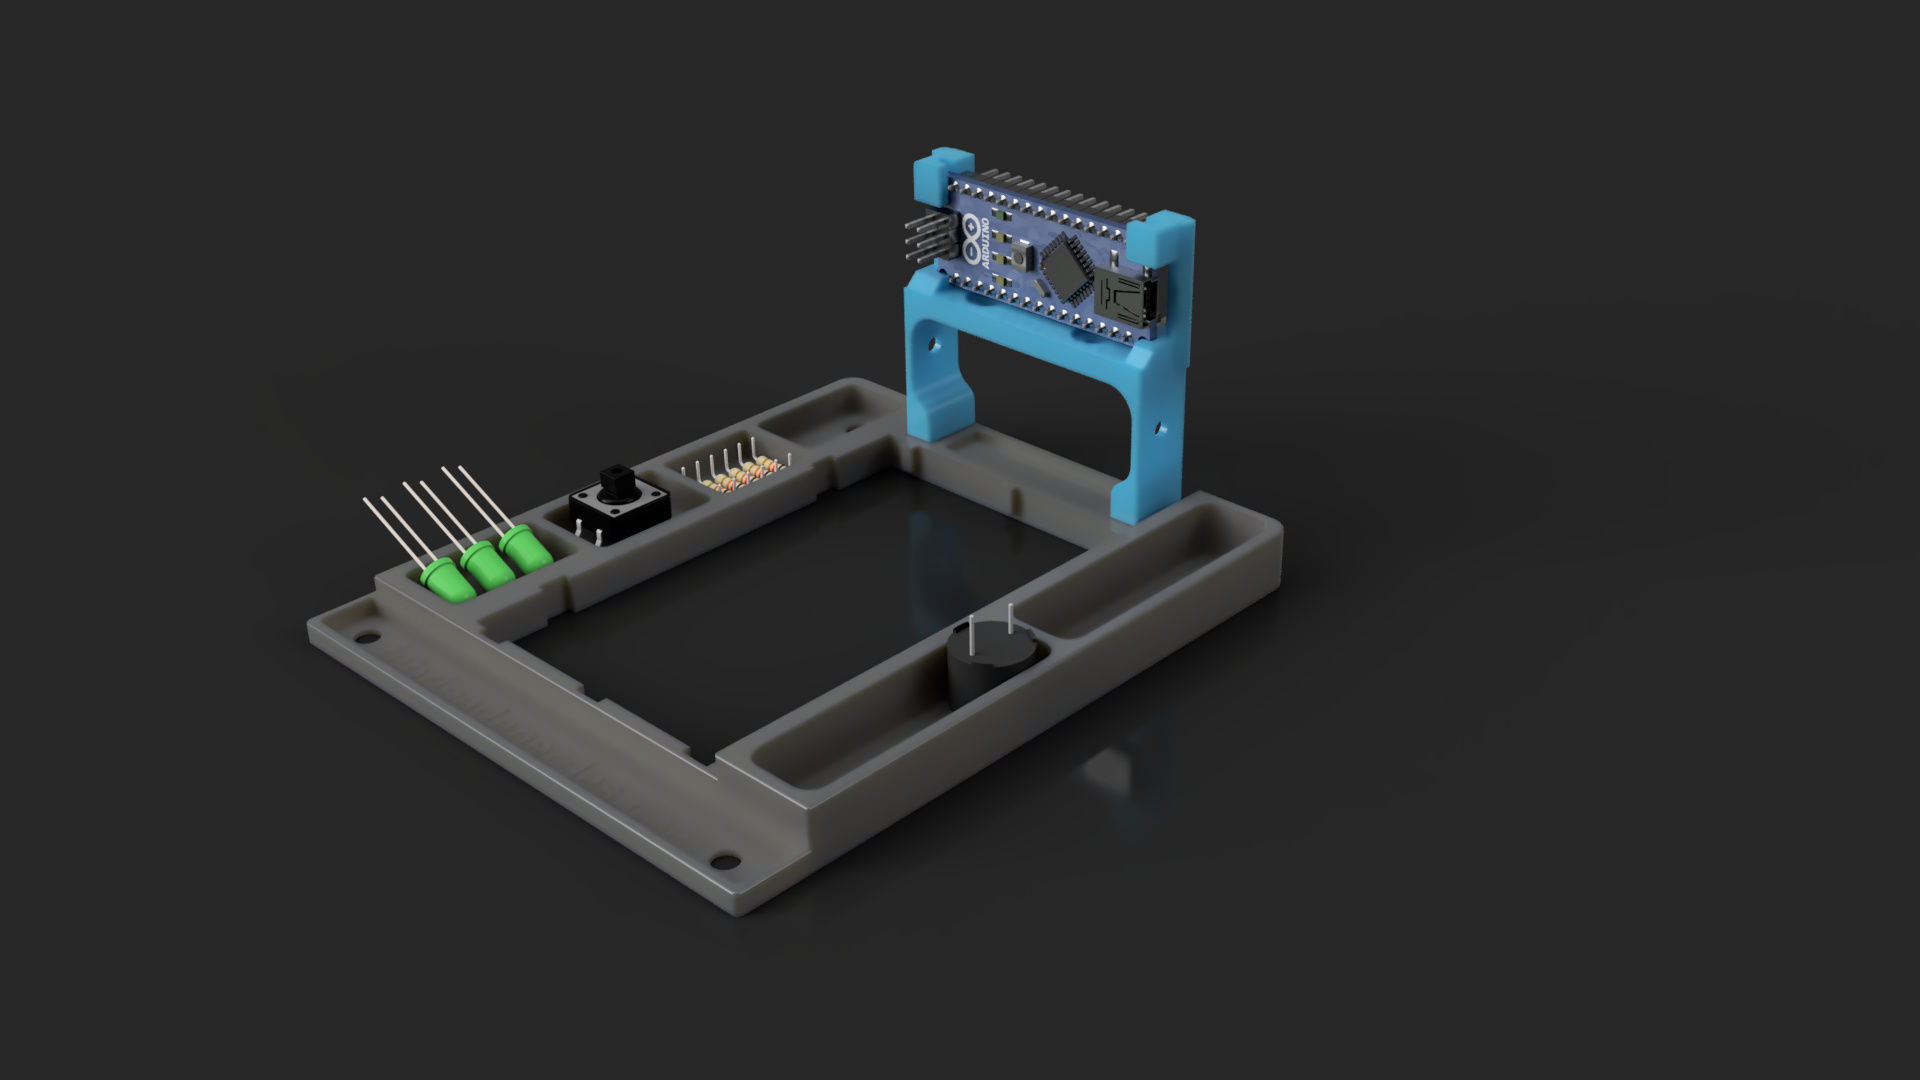 Case-arduino-nano---universal-2019-jun-28-01-48-27pm-000-customizedview7020298414-jpg-3500-3500